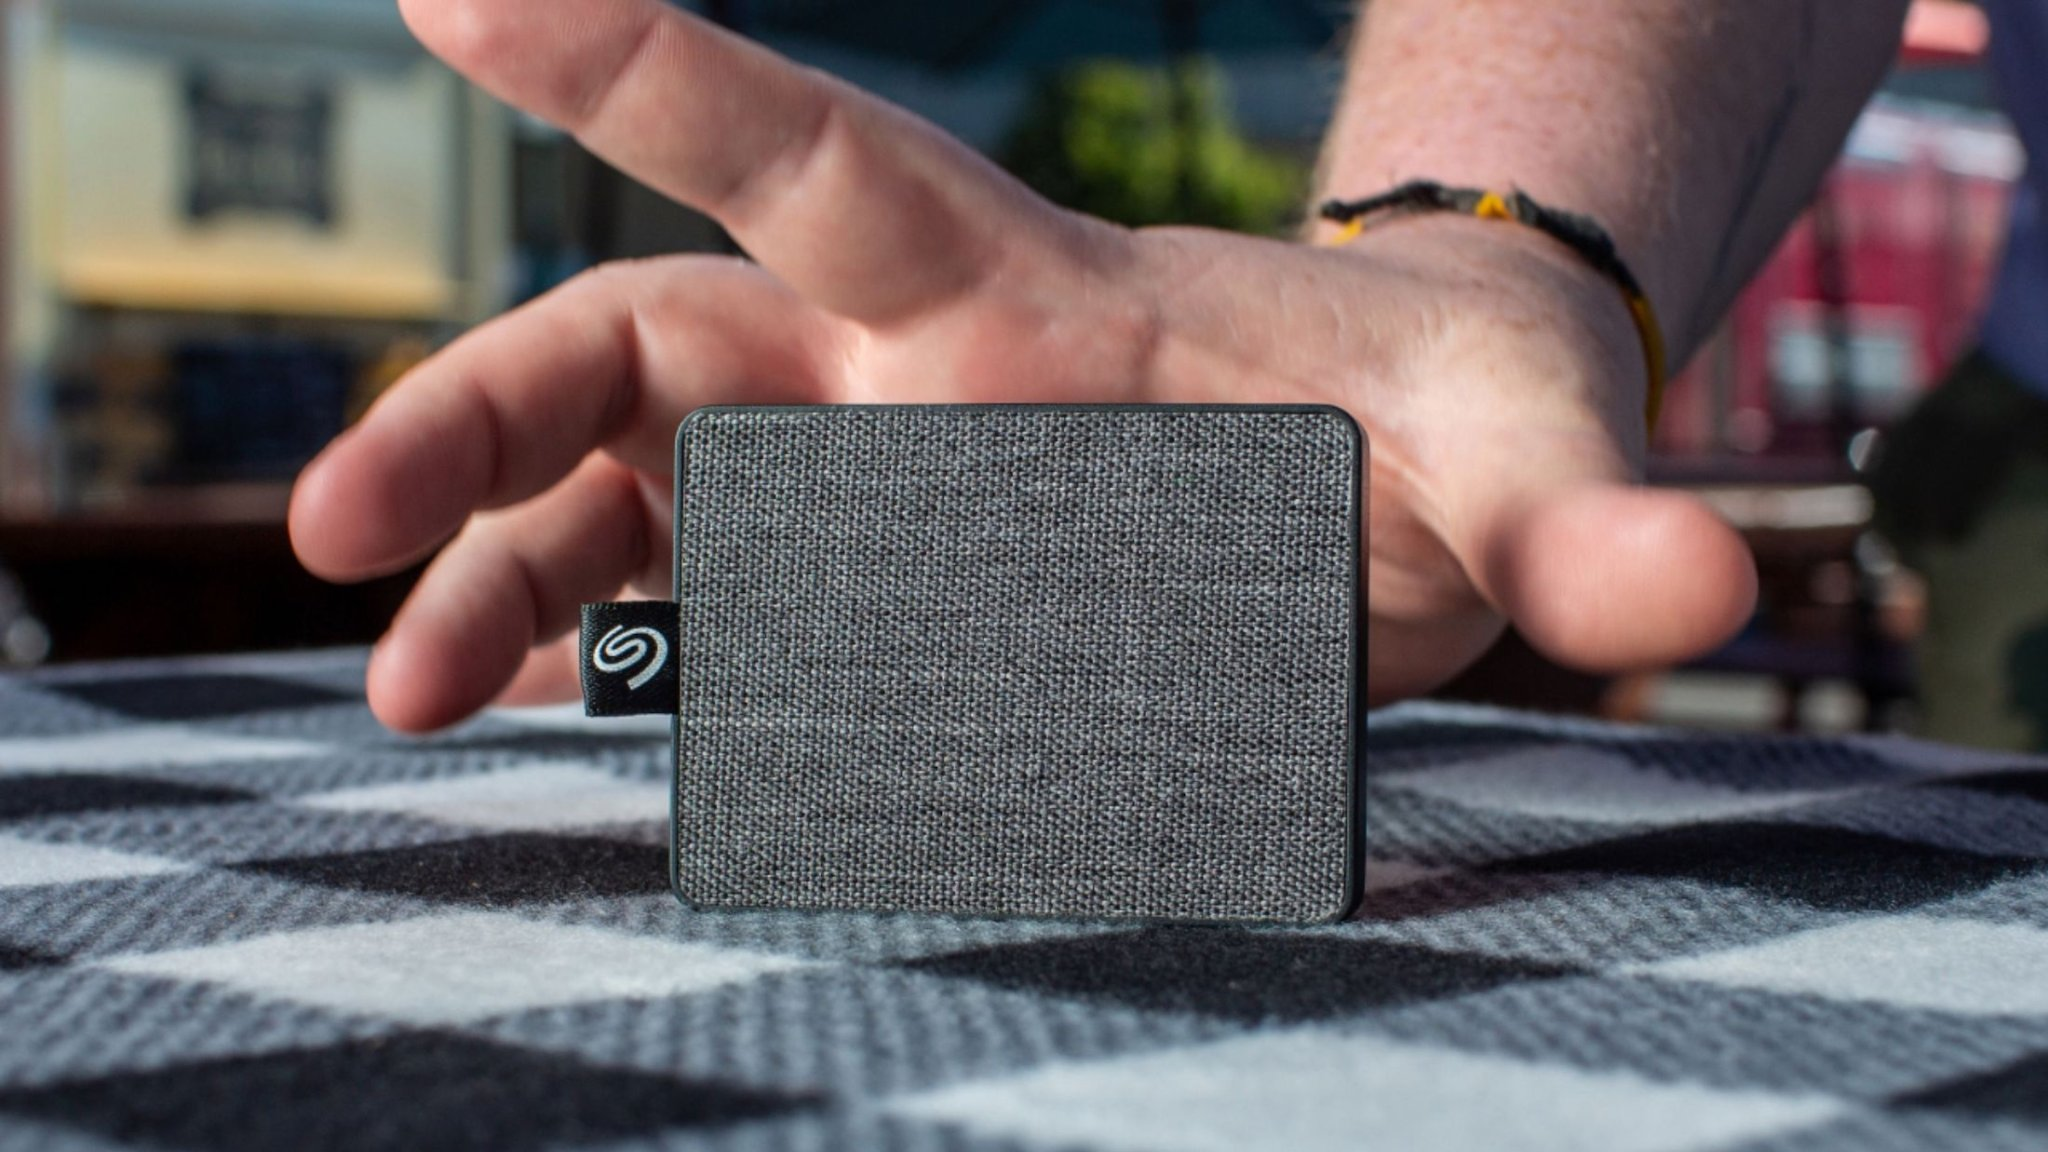 Seagate One Touch SSD tiny external drive works at high speed for video streaming